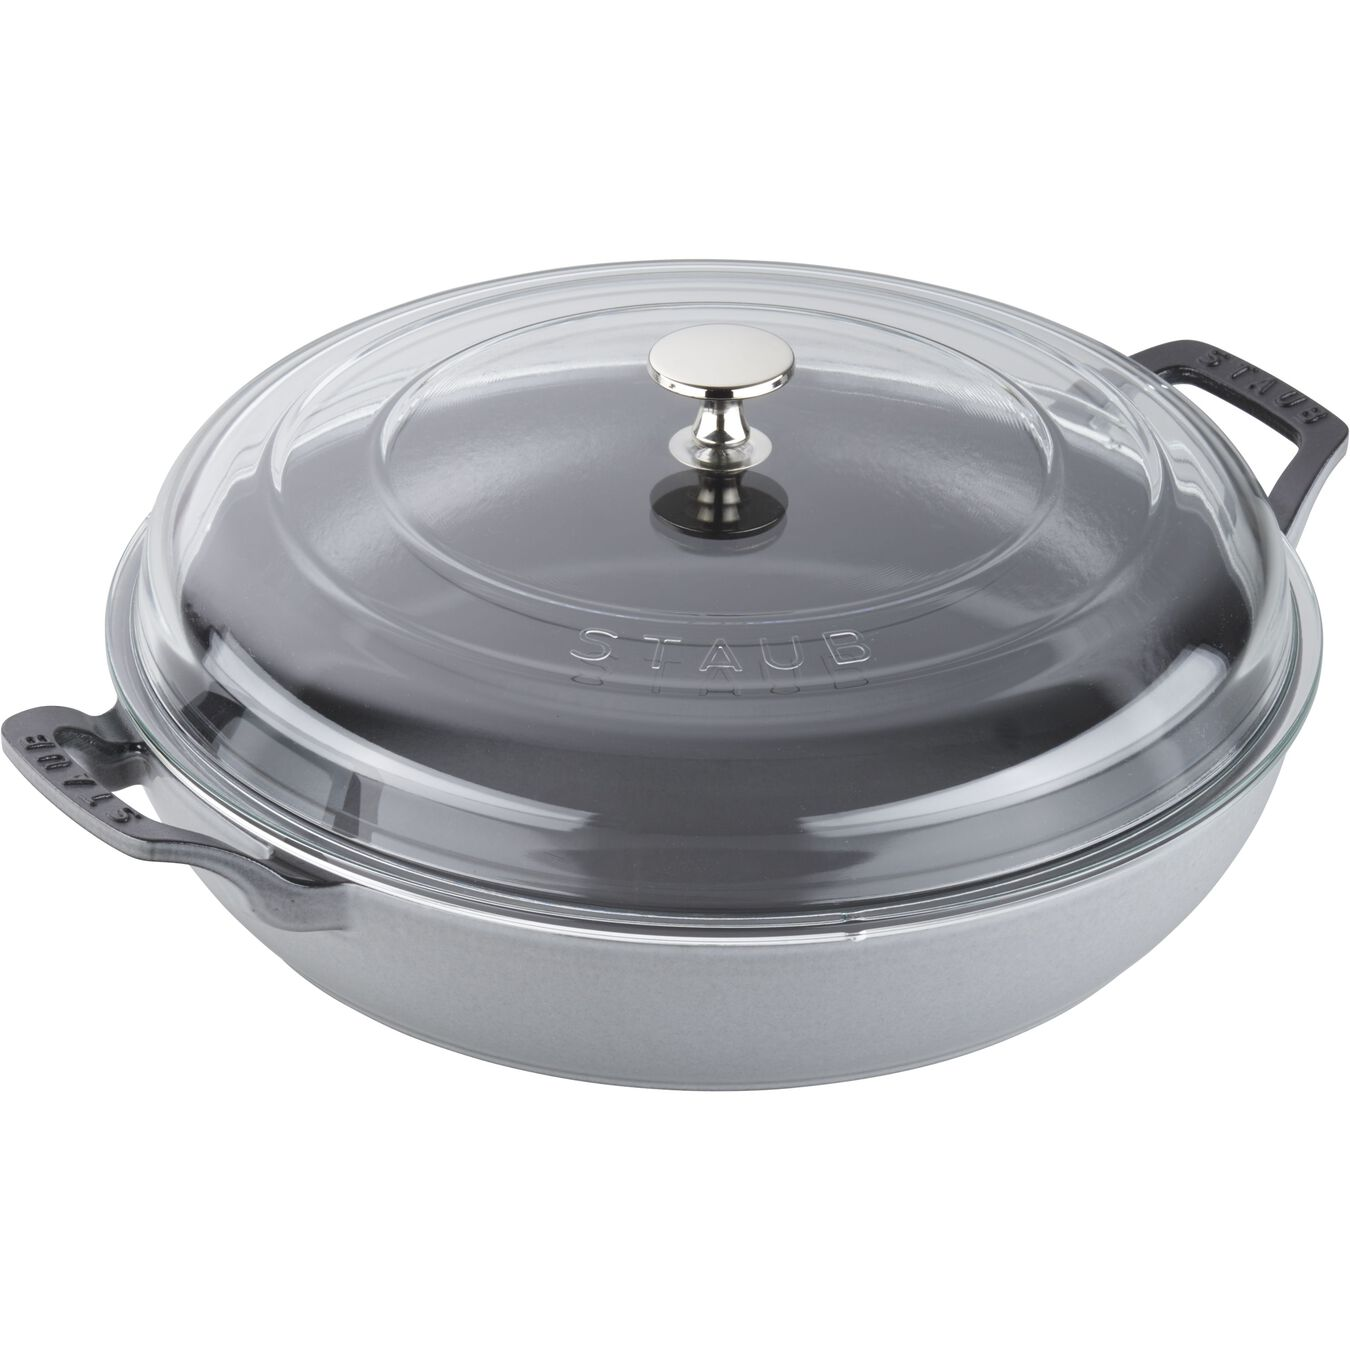 12-inch, Saute pan with glass lid, graphite grey,,large 3